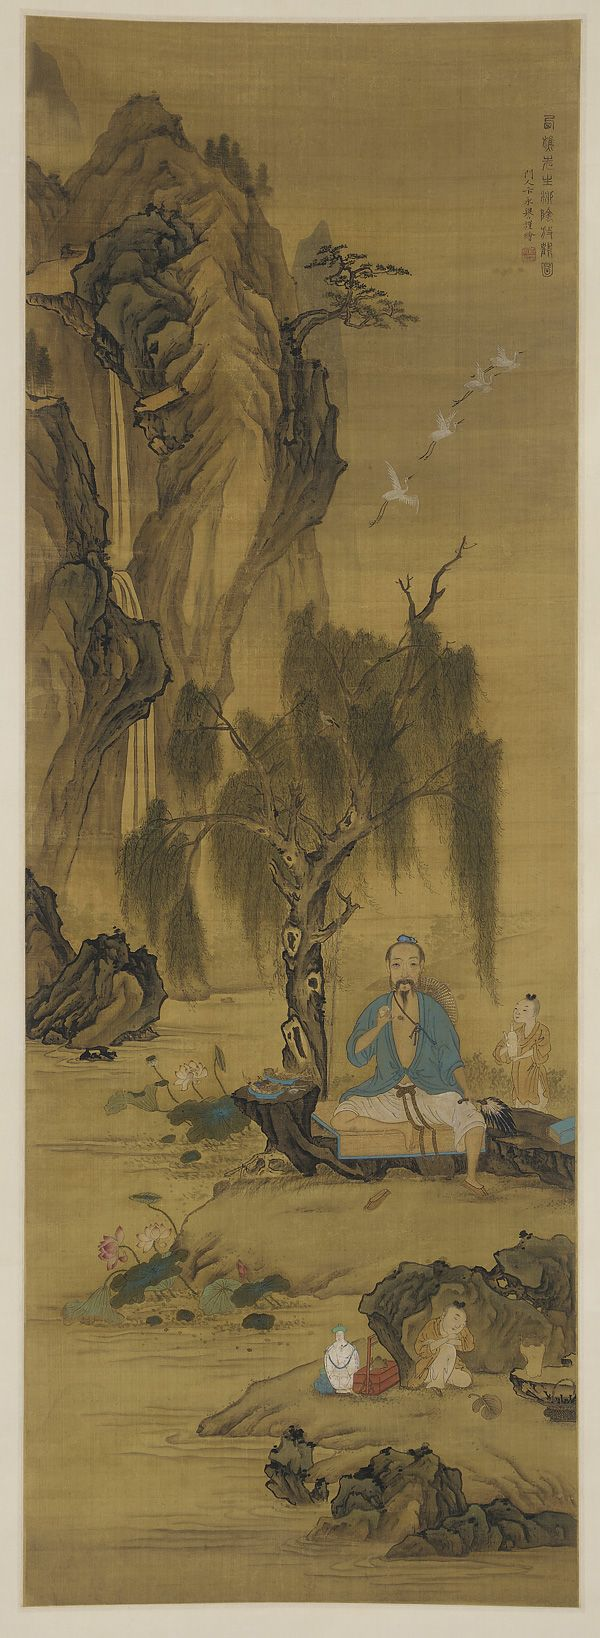 17 Best Images About Chinese Art On Pinterest Museums